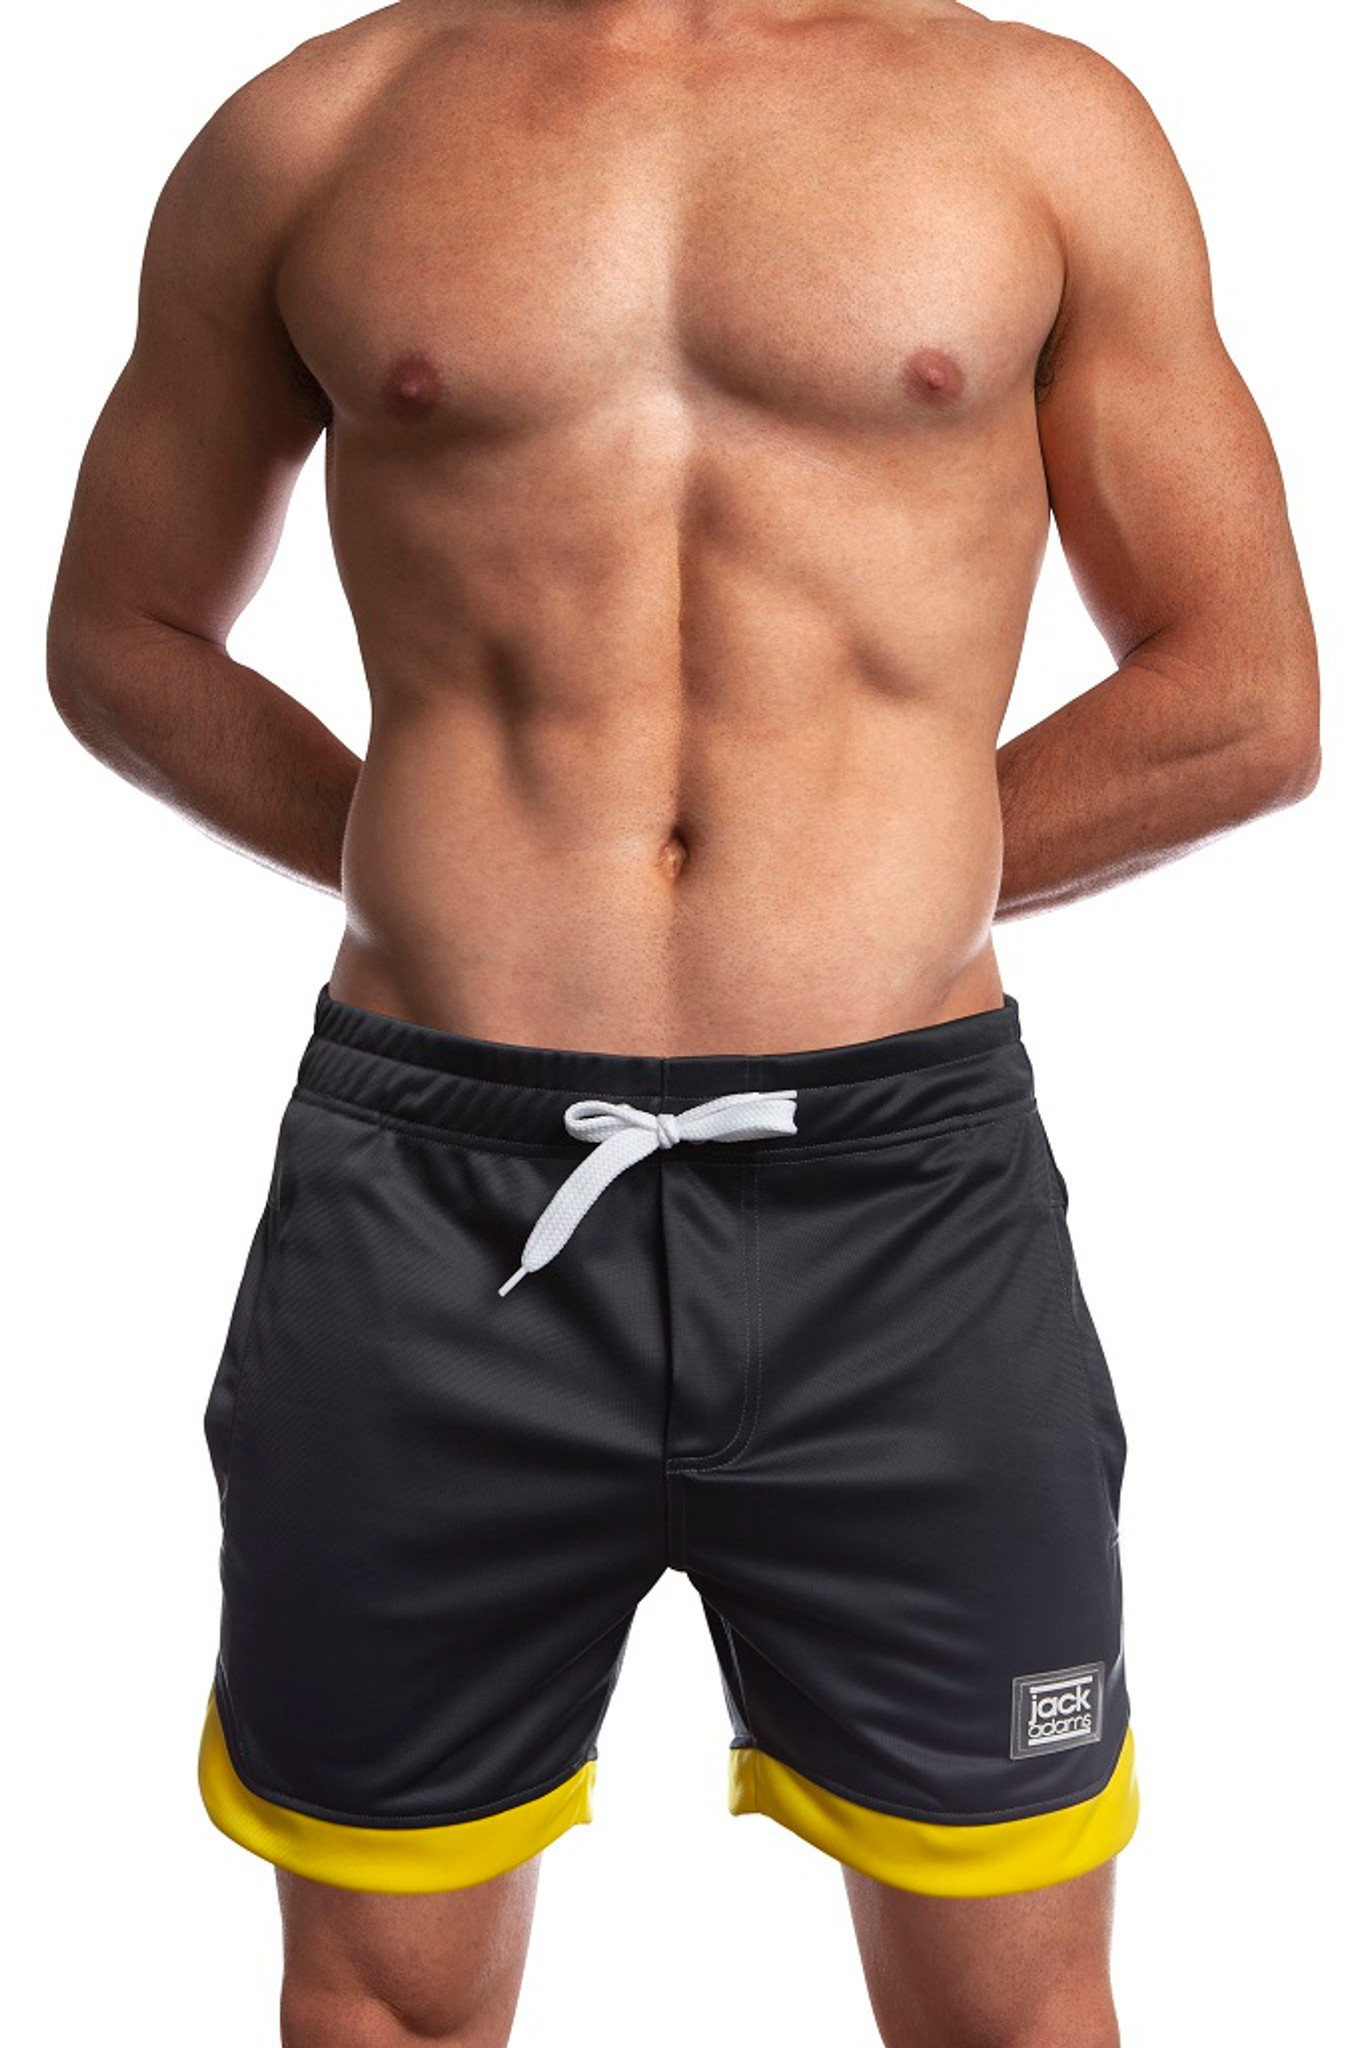 X-Train Fitness Short by Jack Adams.  Whether you're training or just hanging out, our X-Train Fitness Short is built for ultimate comfort and style.